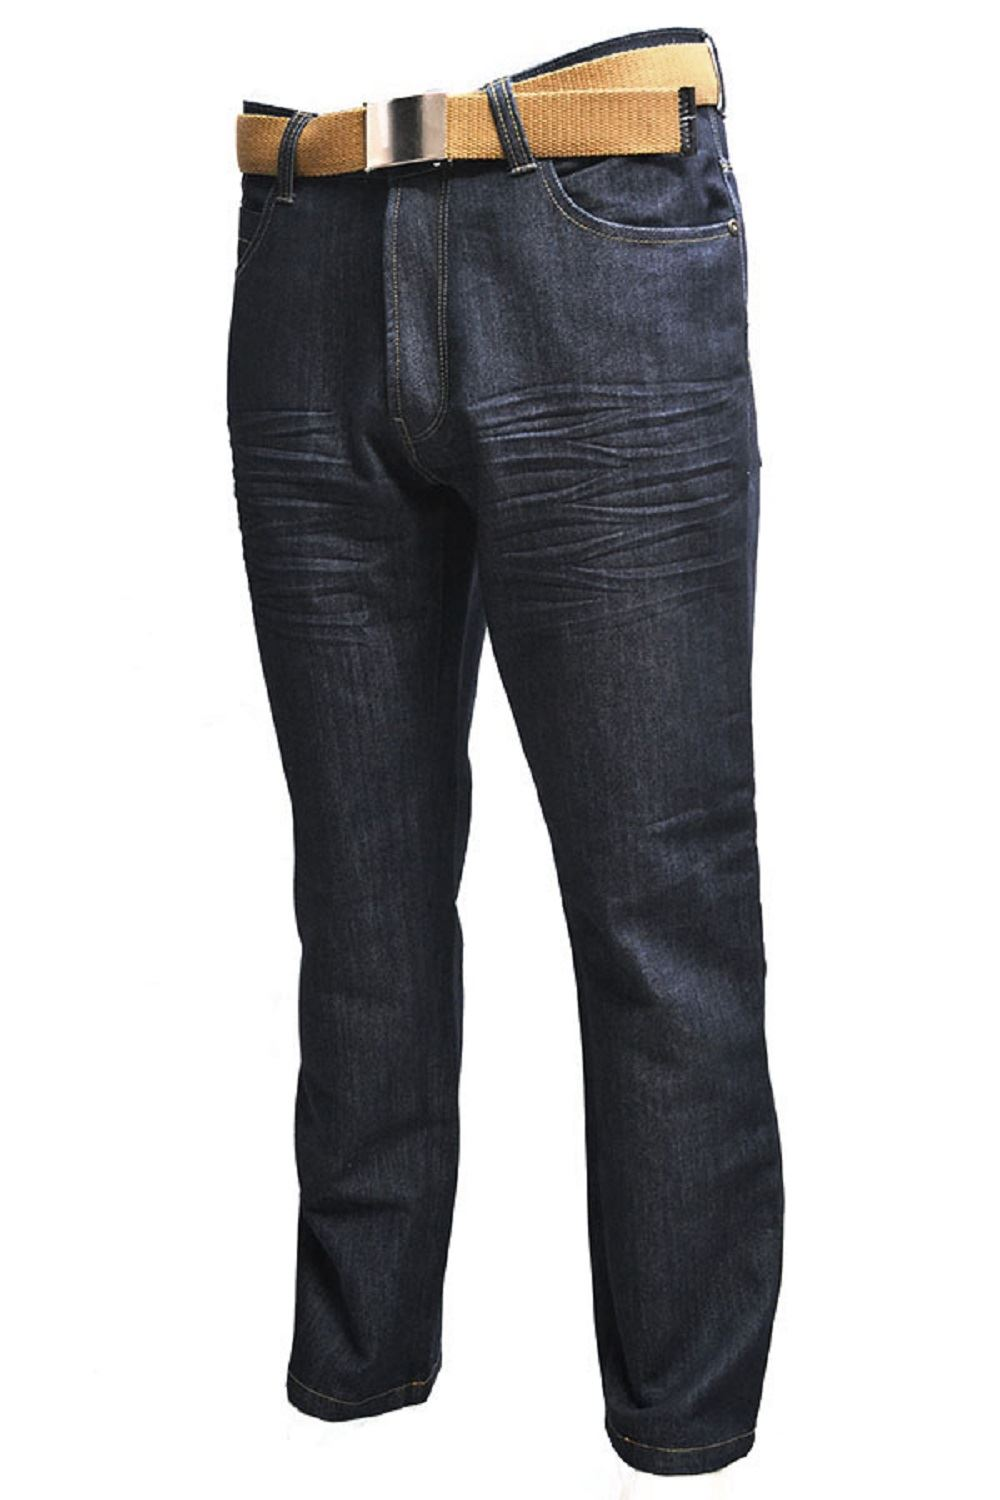 Mens-Classic-Fit-Black-Indigo-Jeans-Kori-By-Creon-Previs thumbnail 20